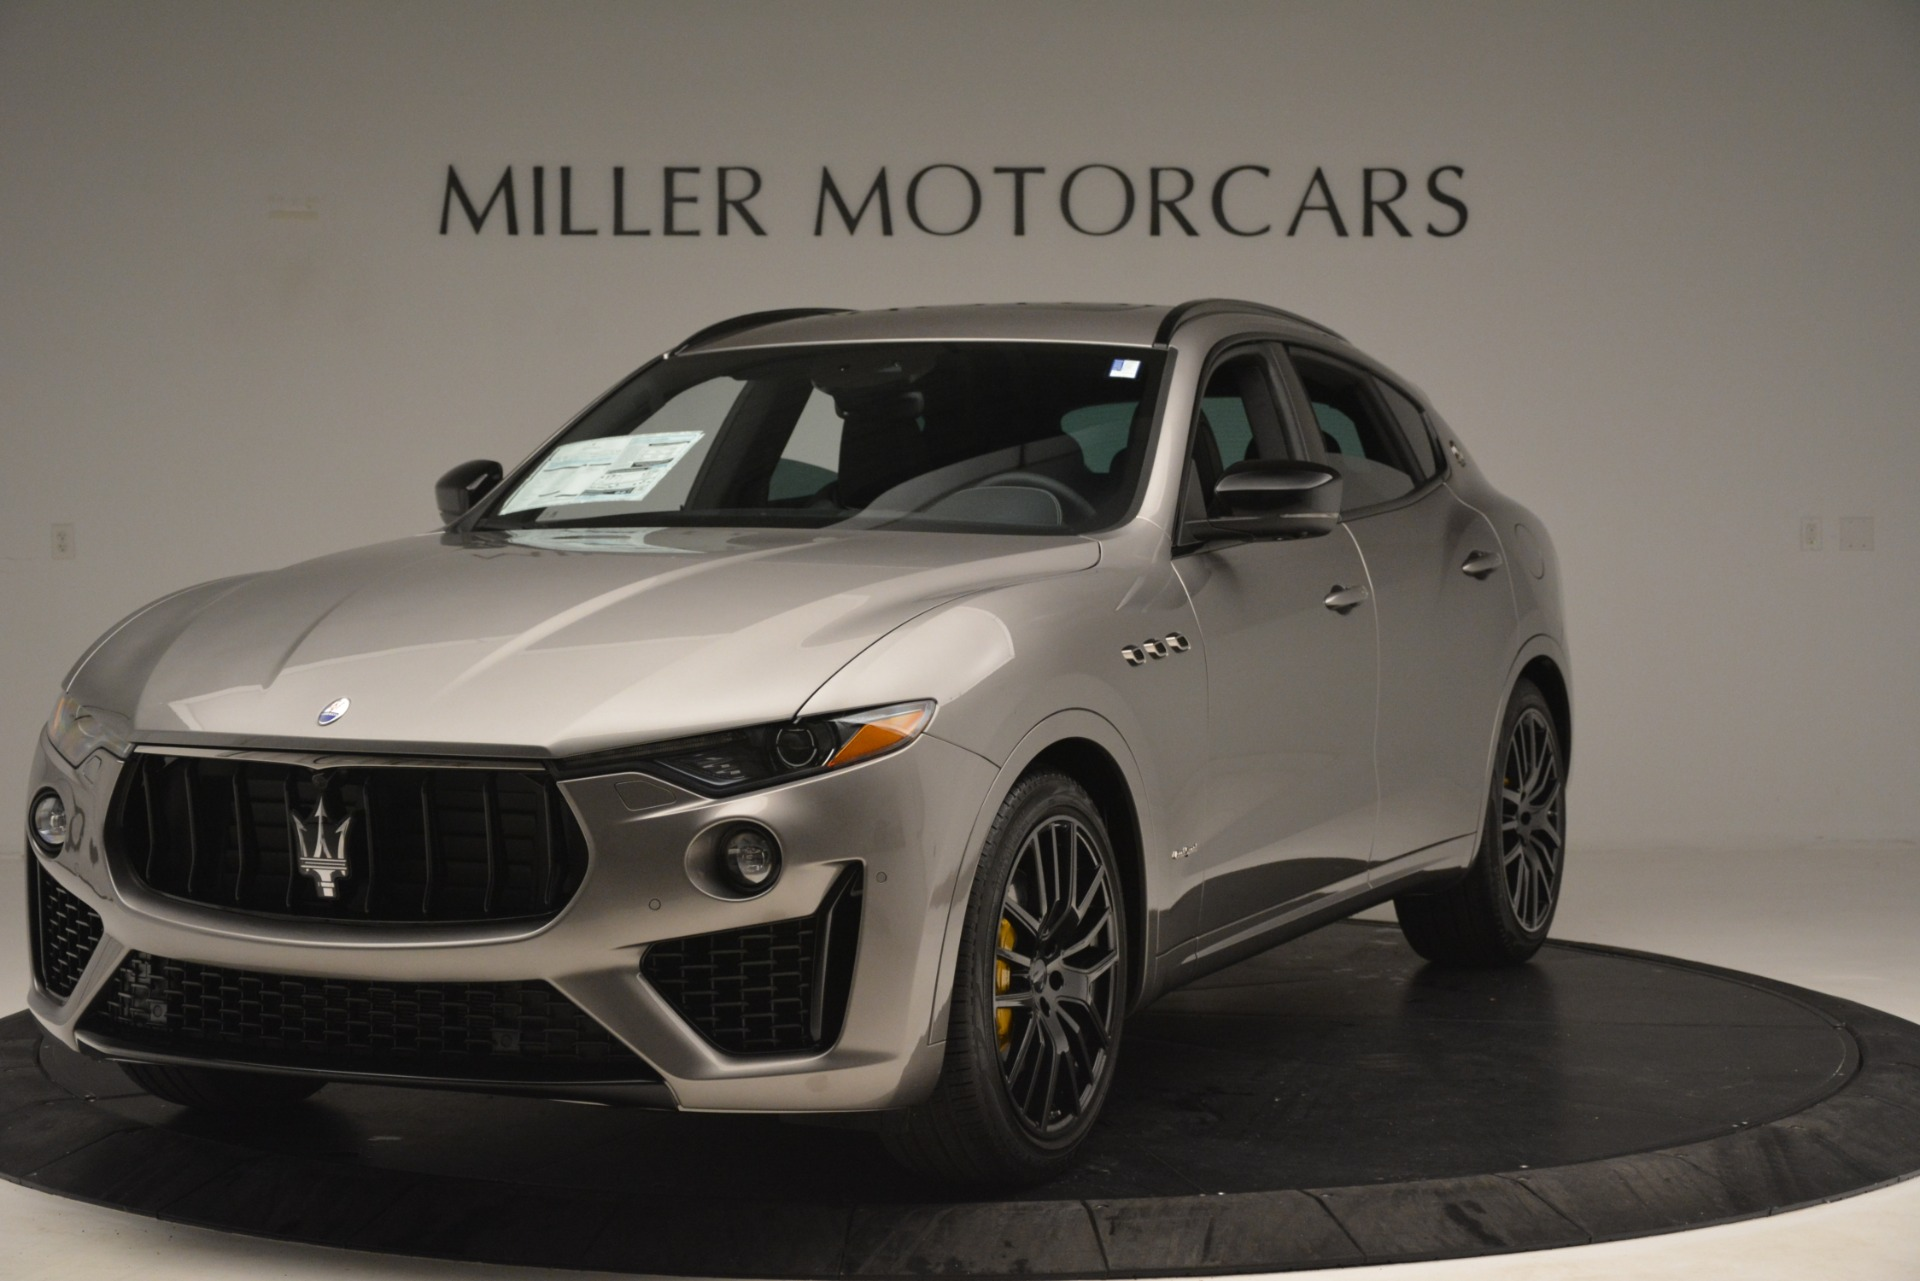 New 2019 Maserati Levante S Q4 GranSport for sale $104,825 at Bentley Greenwich in Greenwich CT 06830 1